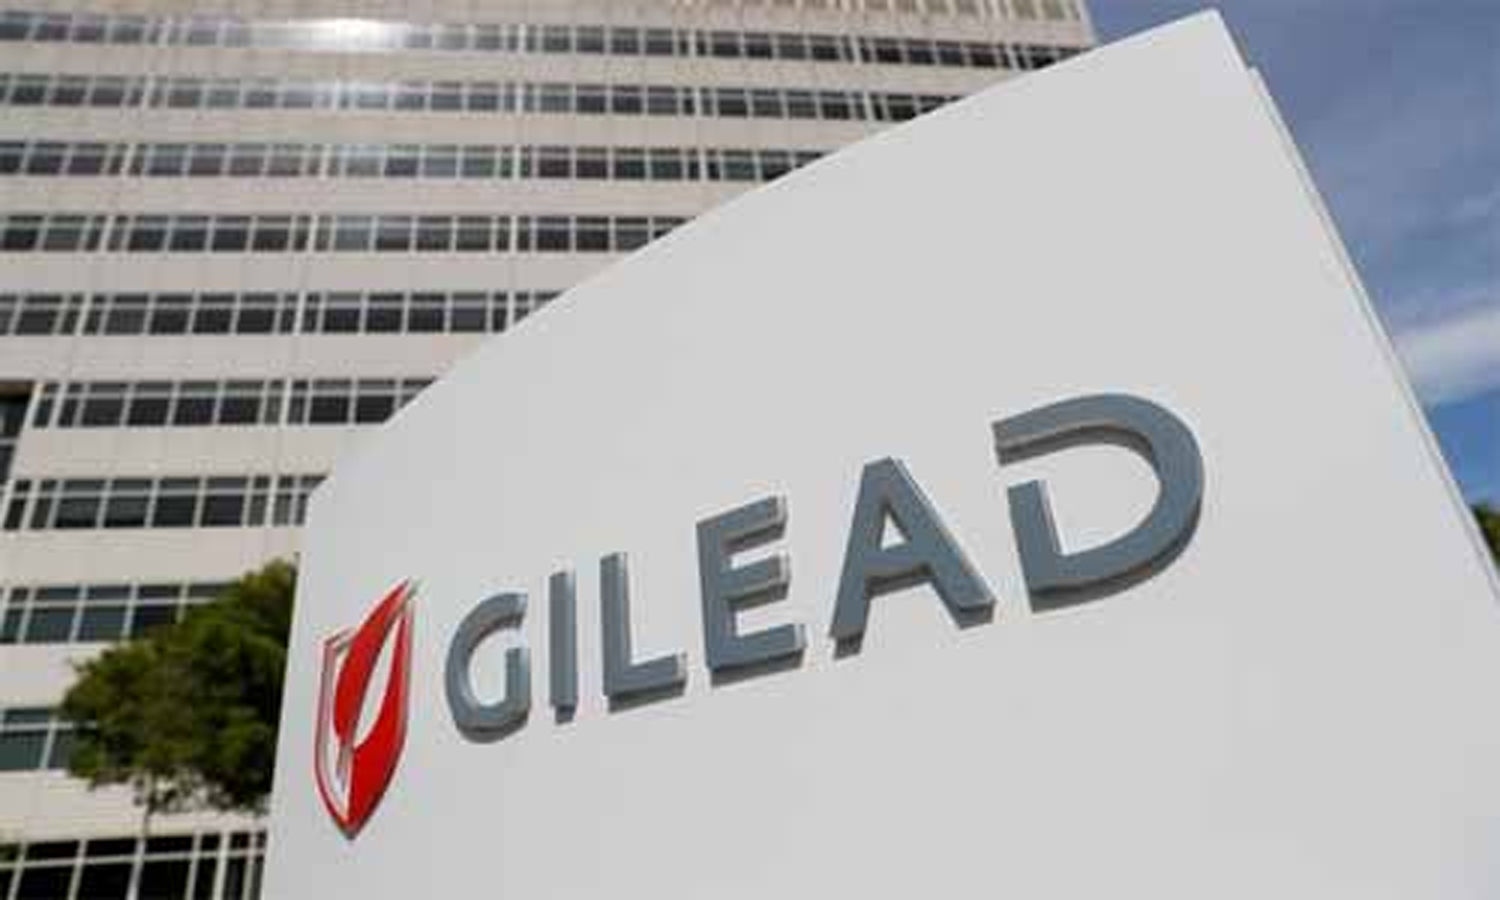 Gilead puts emergency access to experimental coronavirus drug on hold amid surging demand